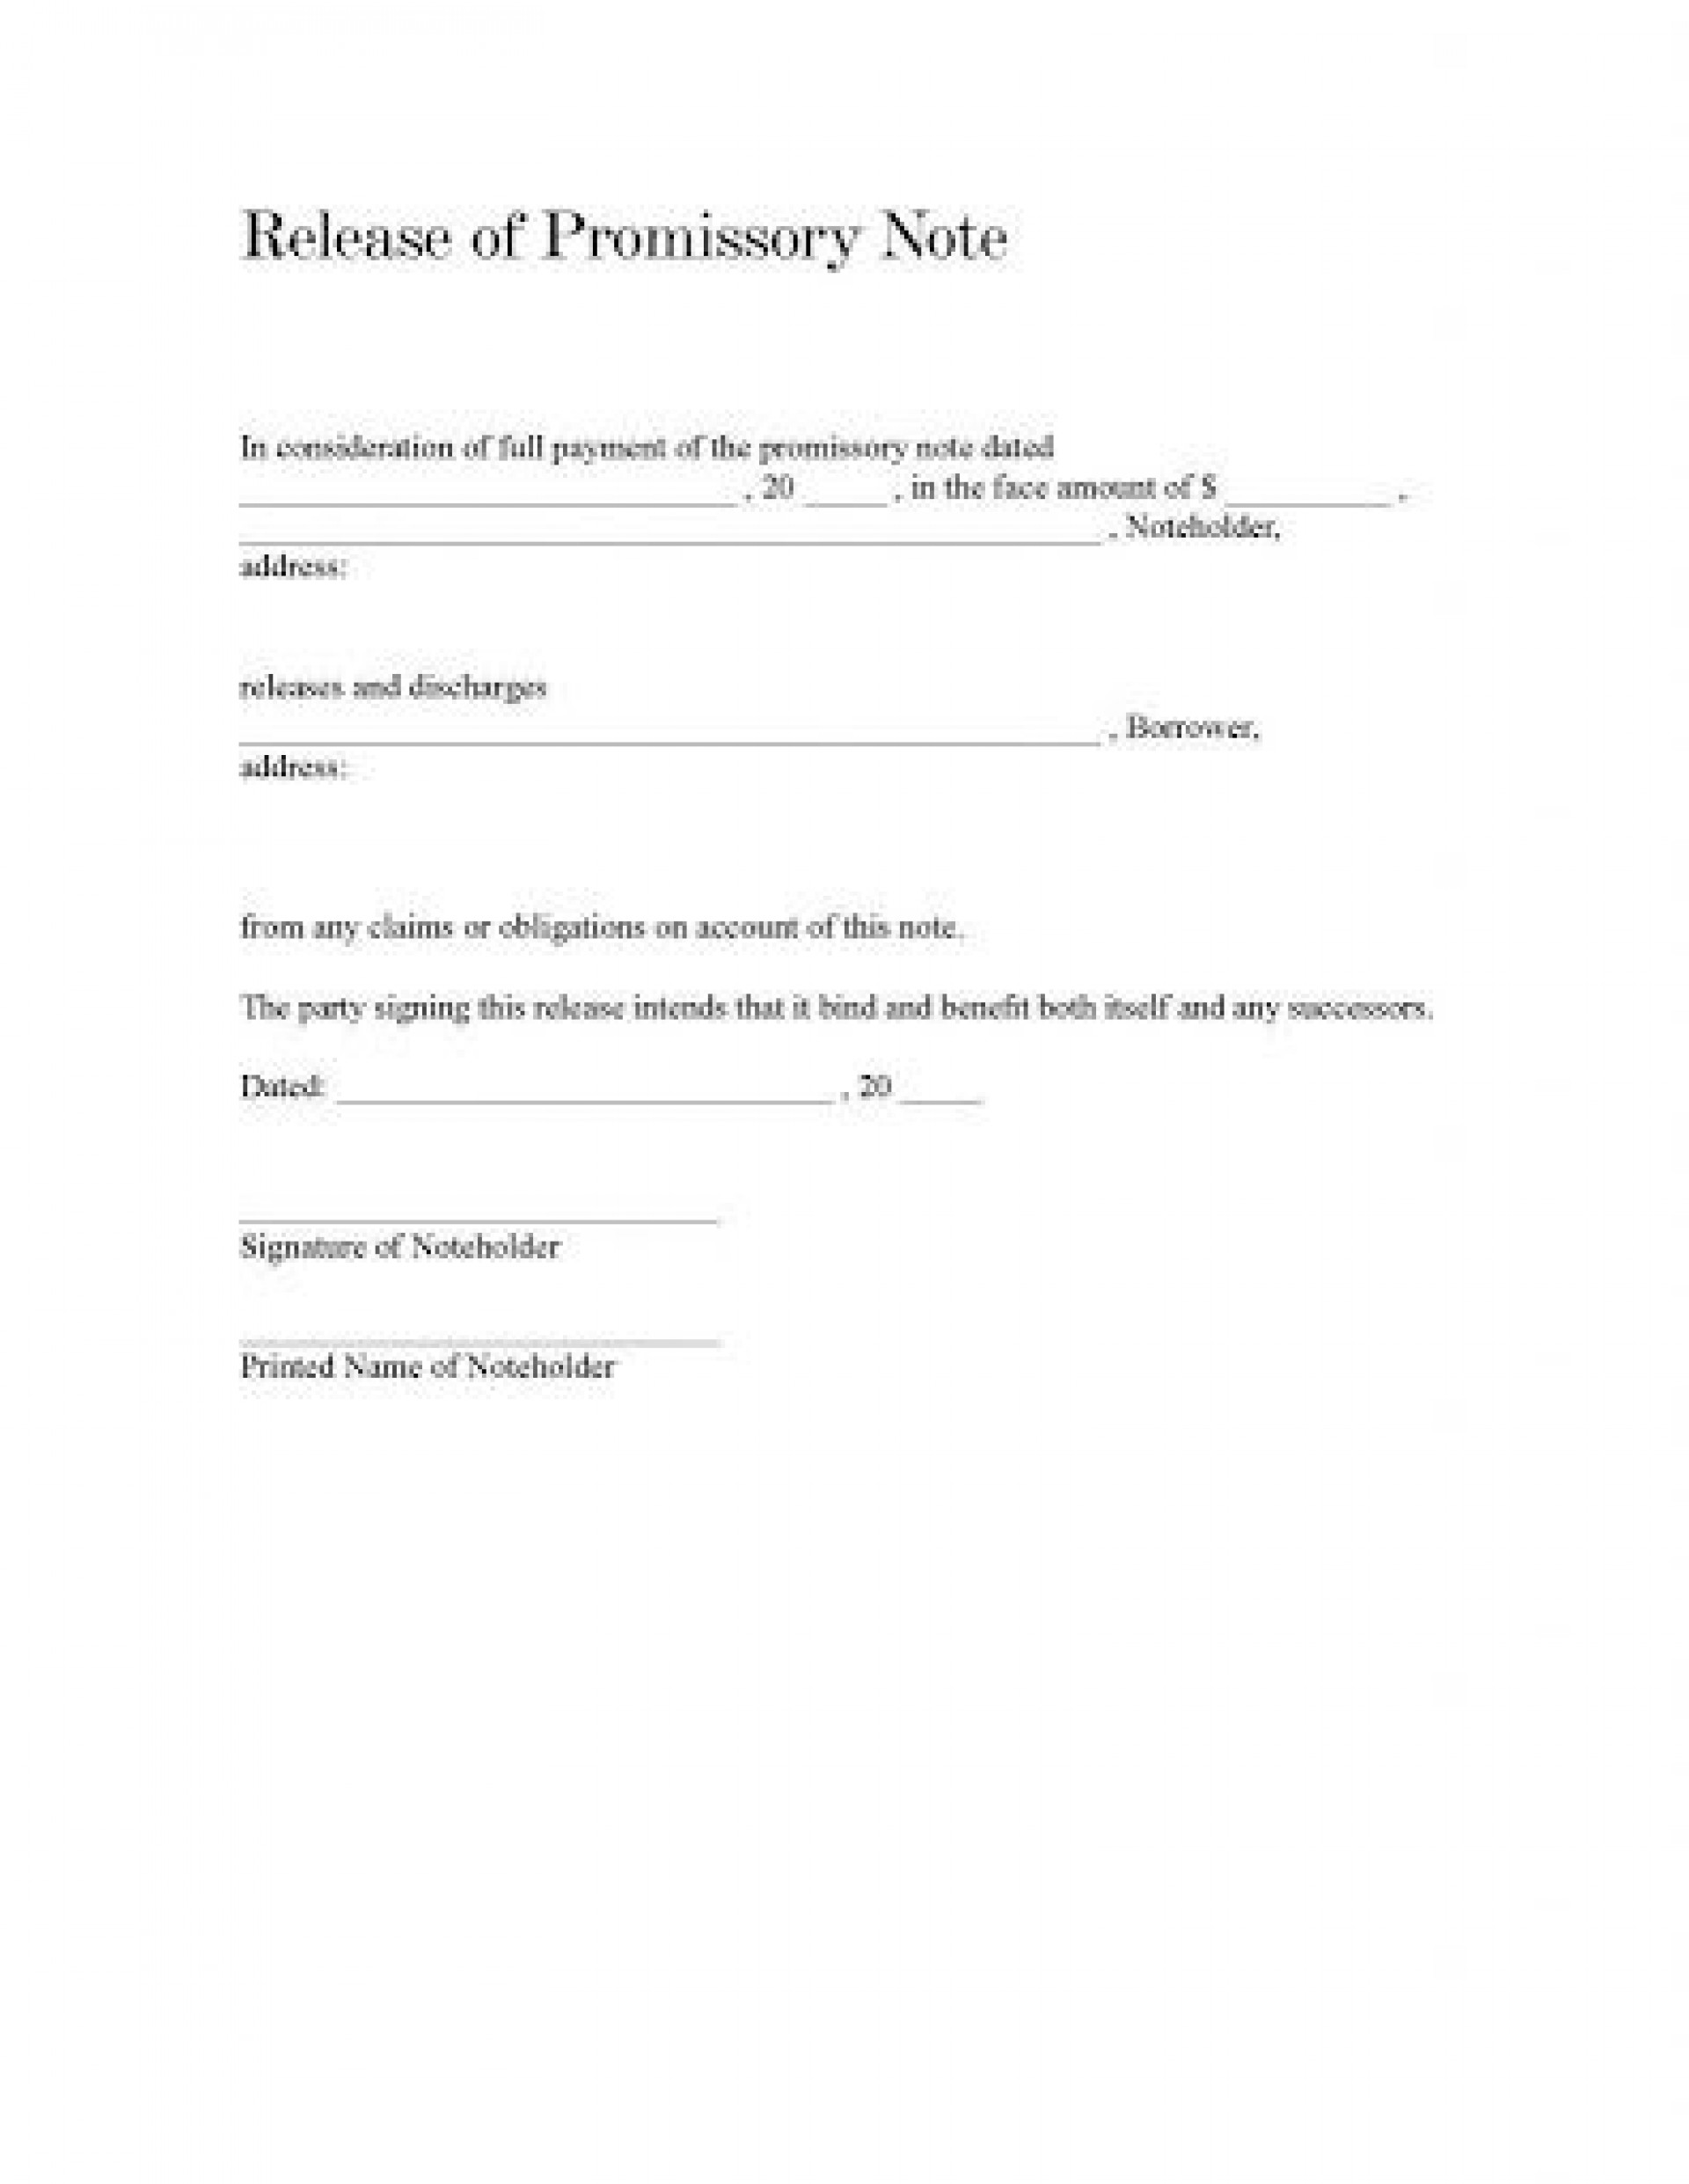 009 Best Loan Promissory Note Template Concept  Ppp Form Personal Format Student1920